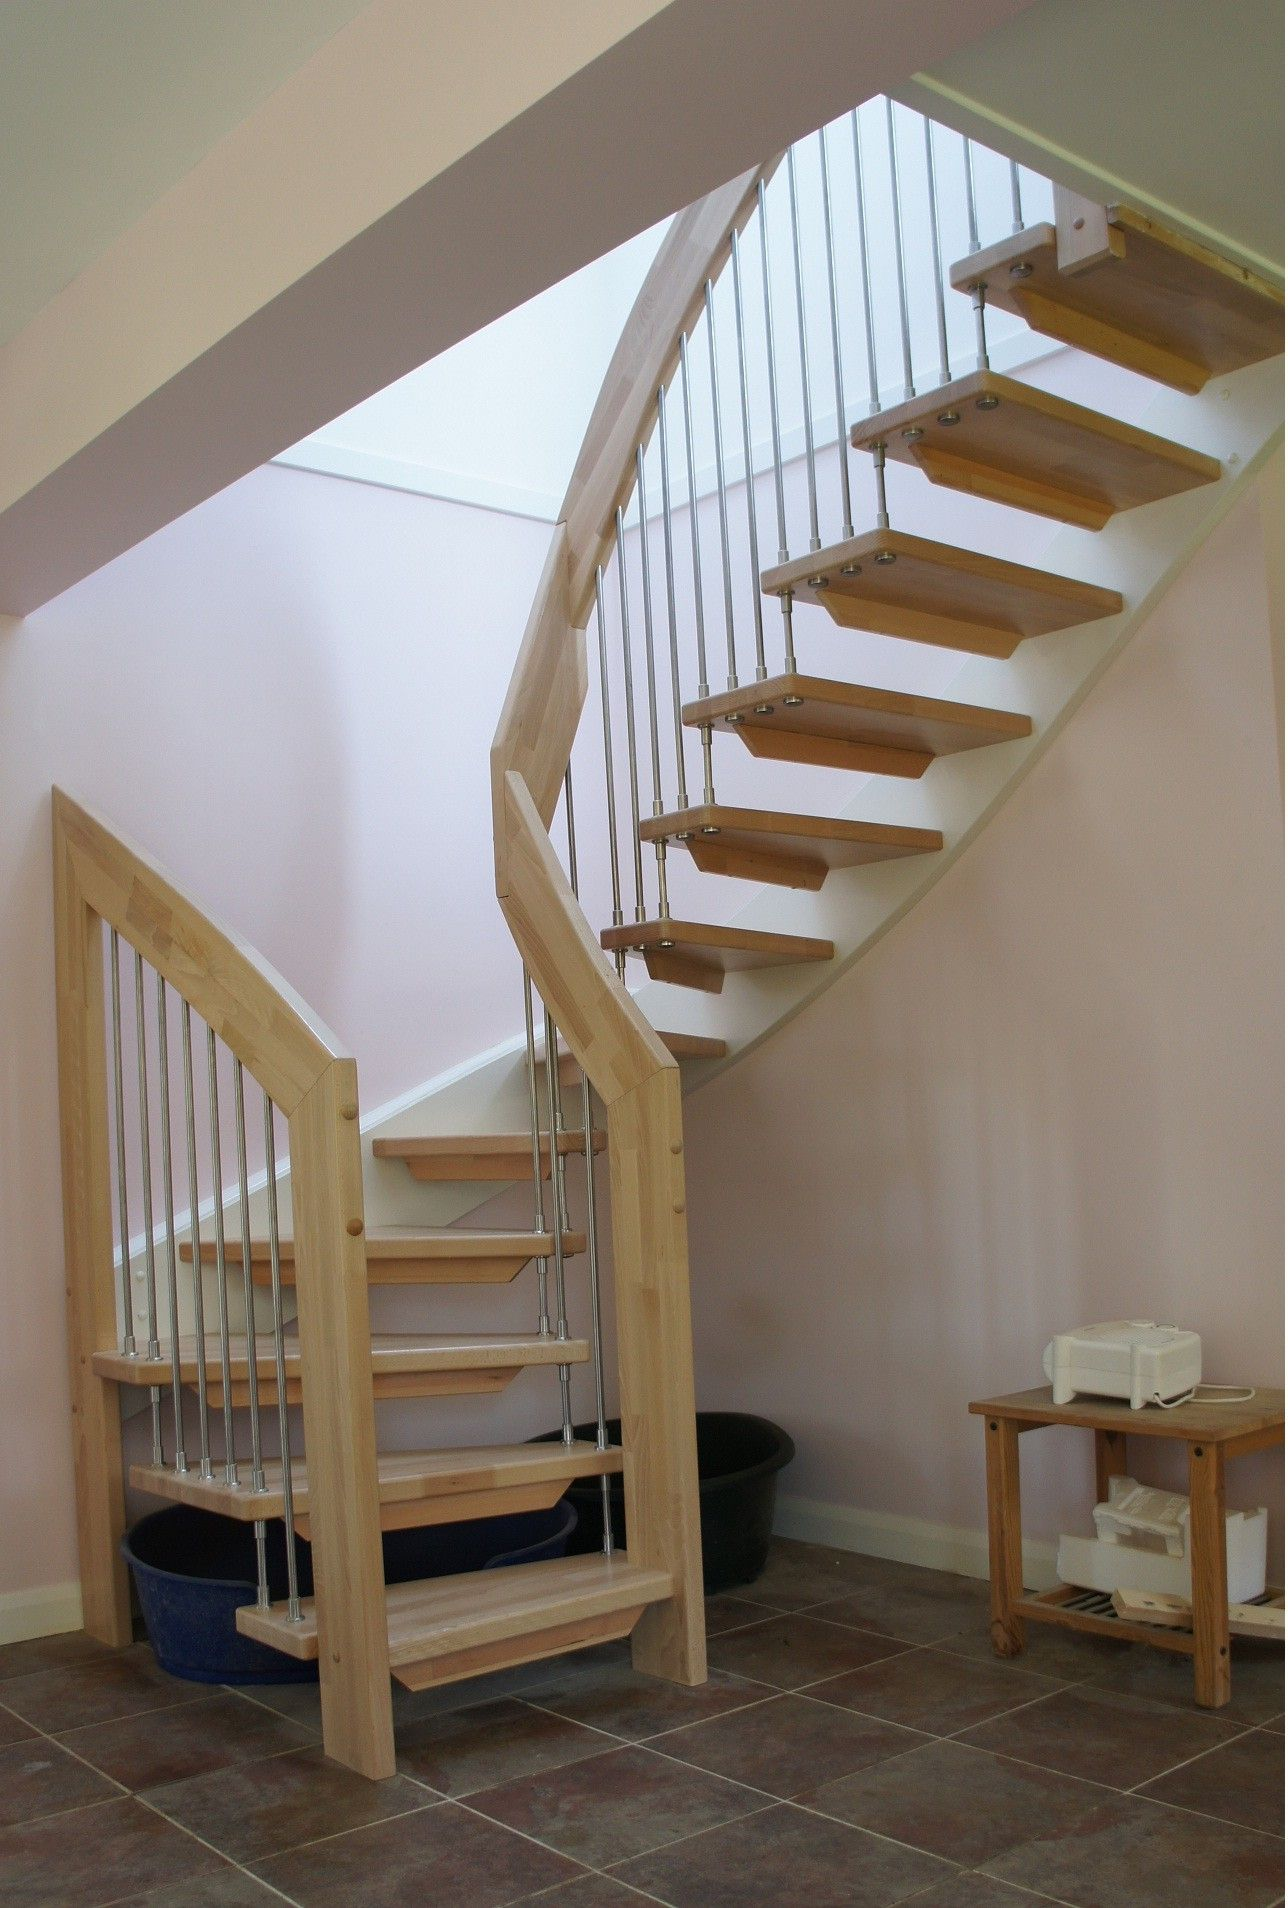 Simple Design Ideas Of Small Space Staircase With Brown   Concrete Stair Design For Small House